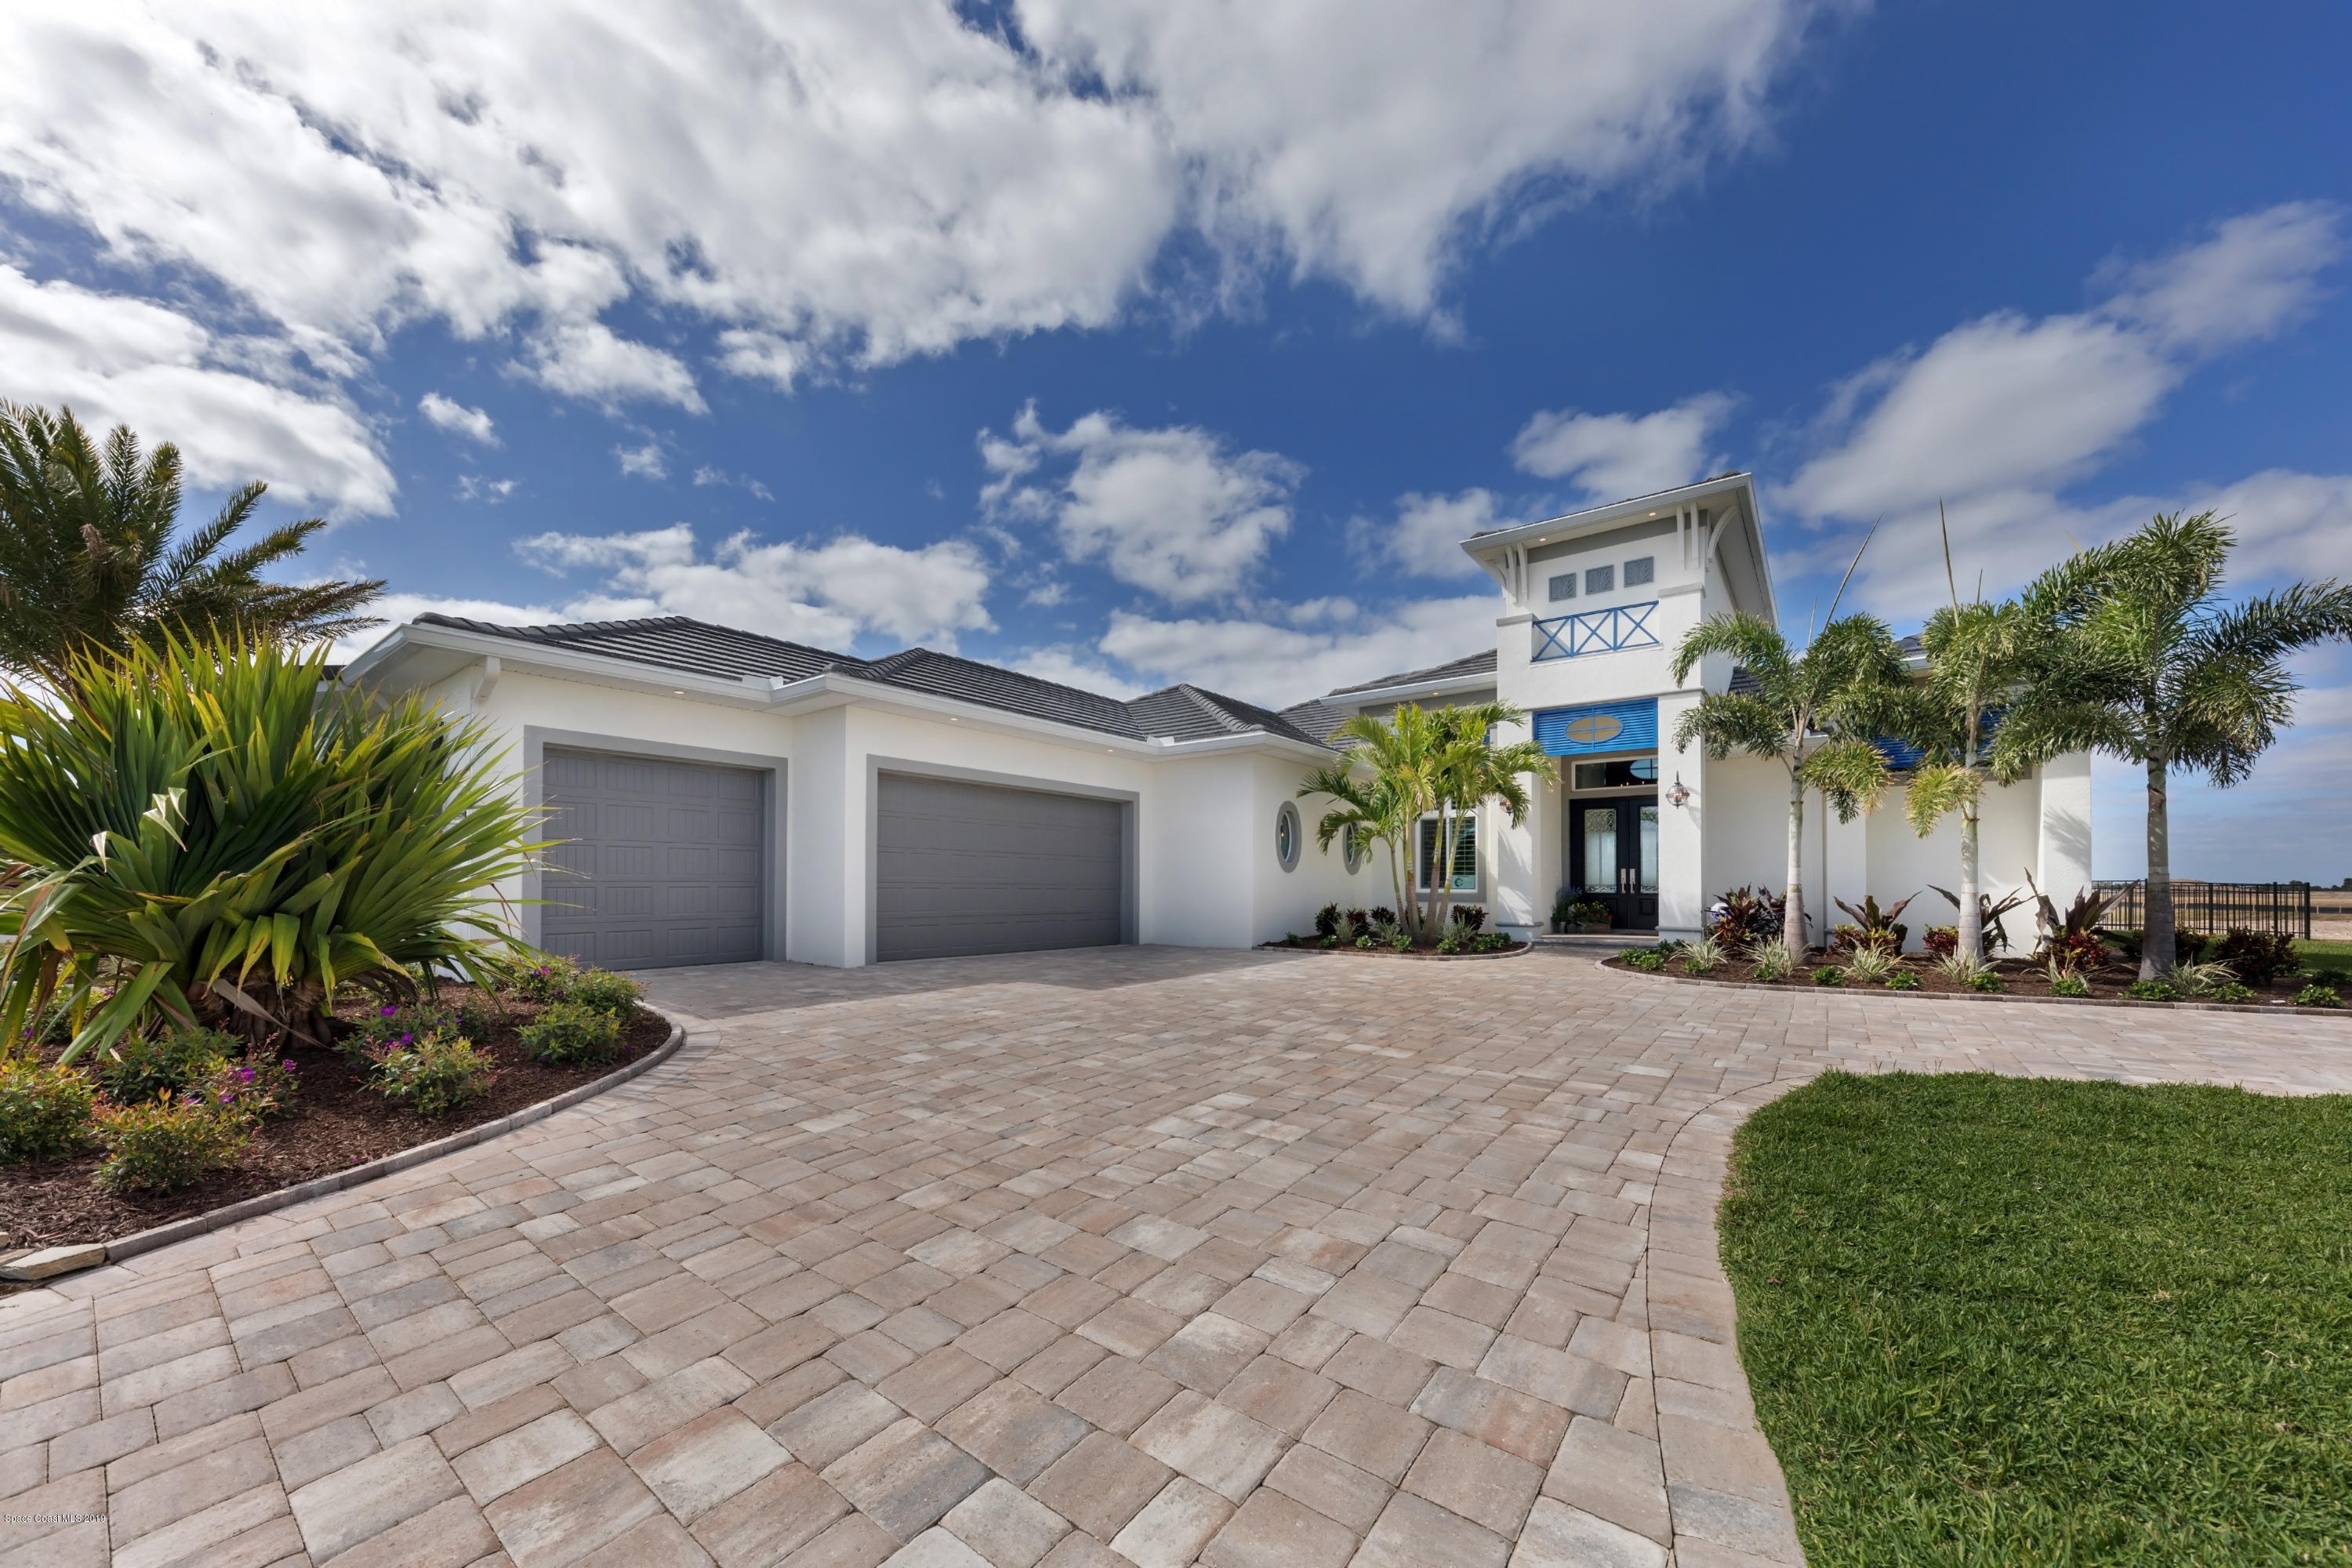 Property for Sale at 248 Lansing Island Indian Harbour Beach, Florida 32937 United States